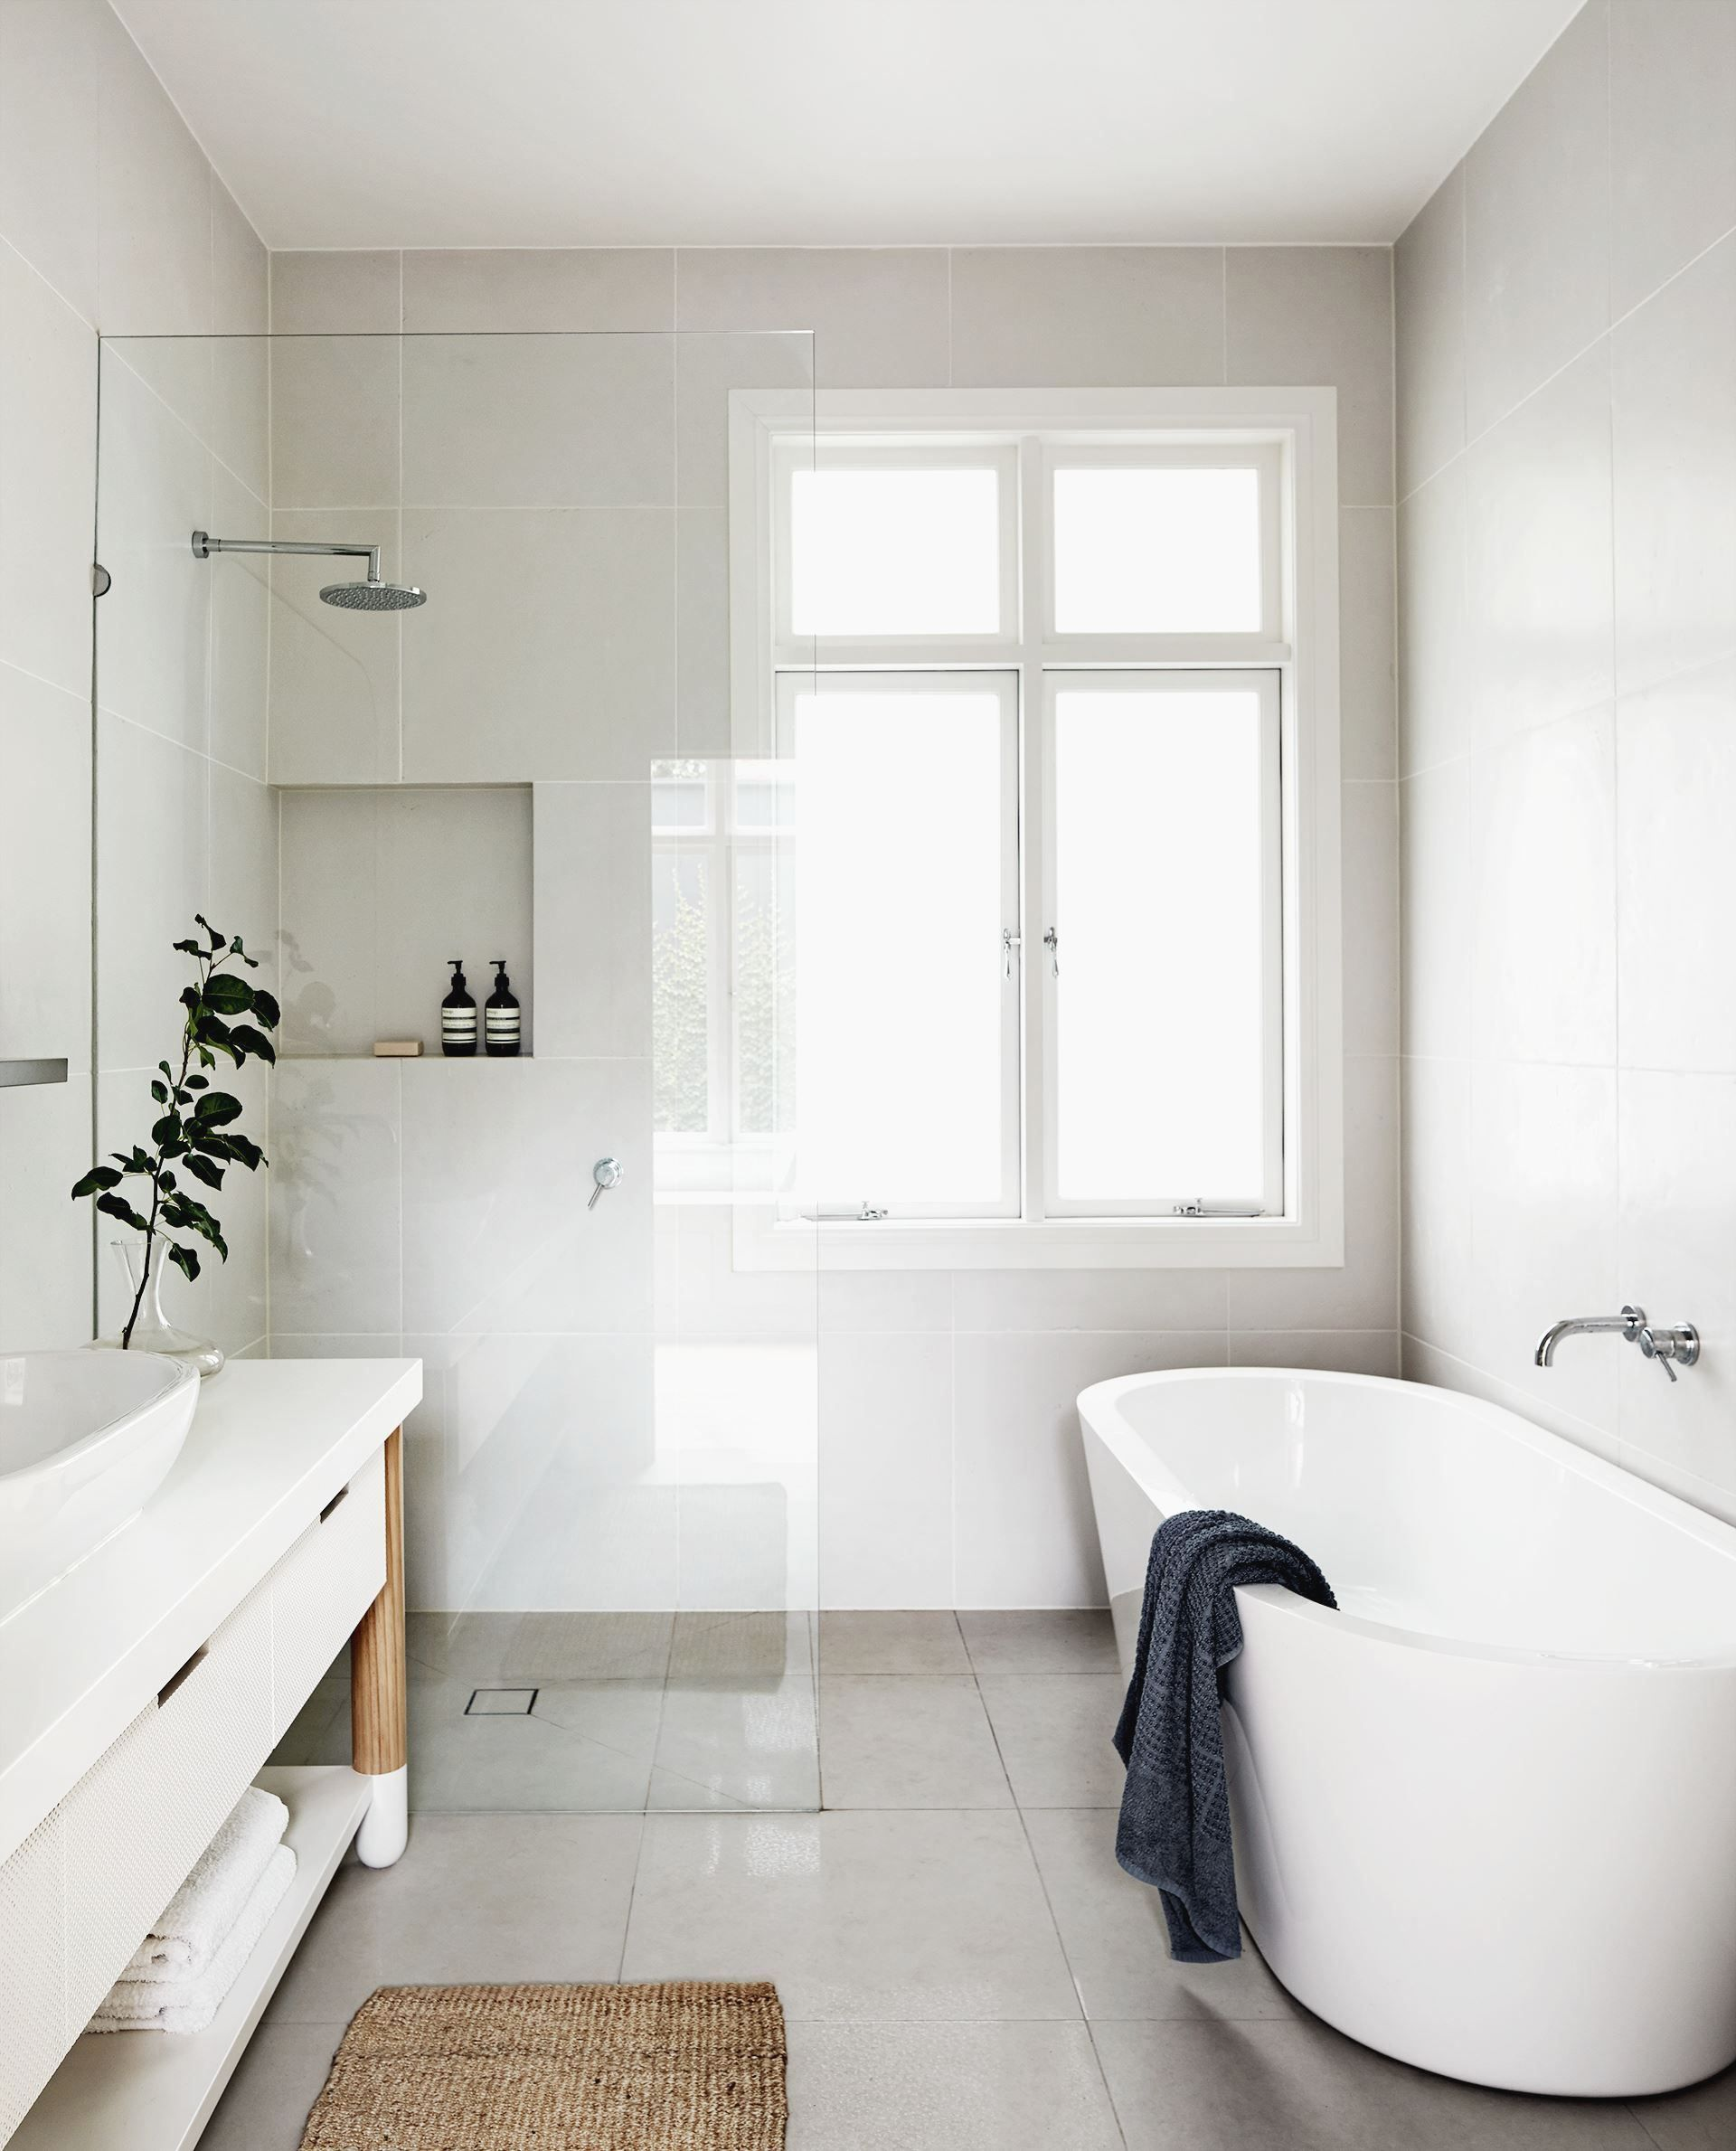 Luxury Bathrooms That Are Instant Classics In 2020 Small Bathroom Layout Luxury Bathroom Small Bathroom